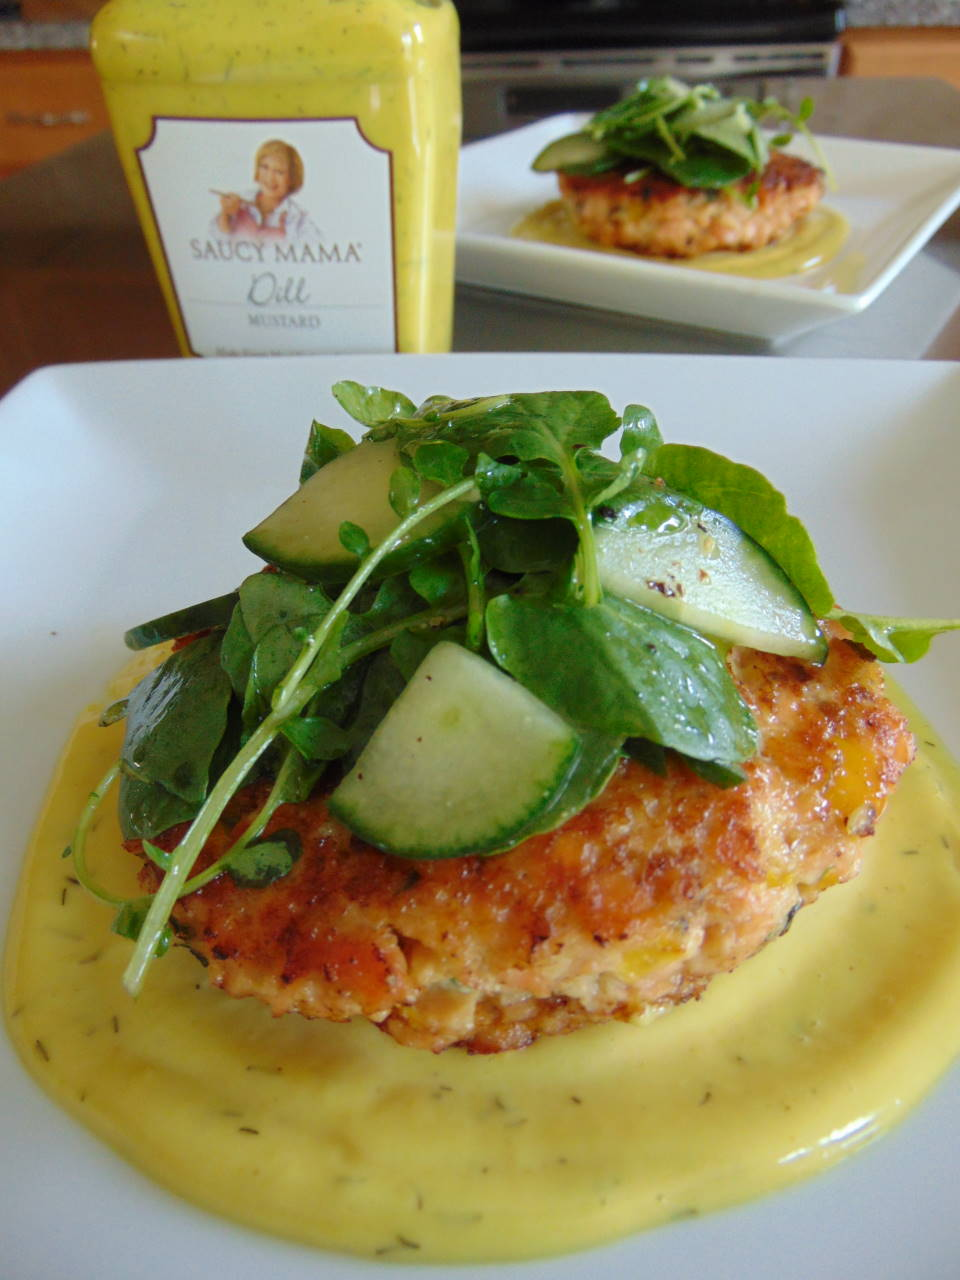 Salmon Cakes over Mustard Dill Aioli with Cucumber Watercress Salad With Saucy mama s Dill mustard